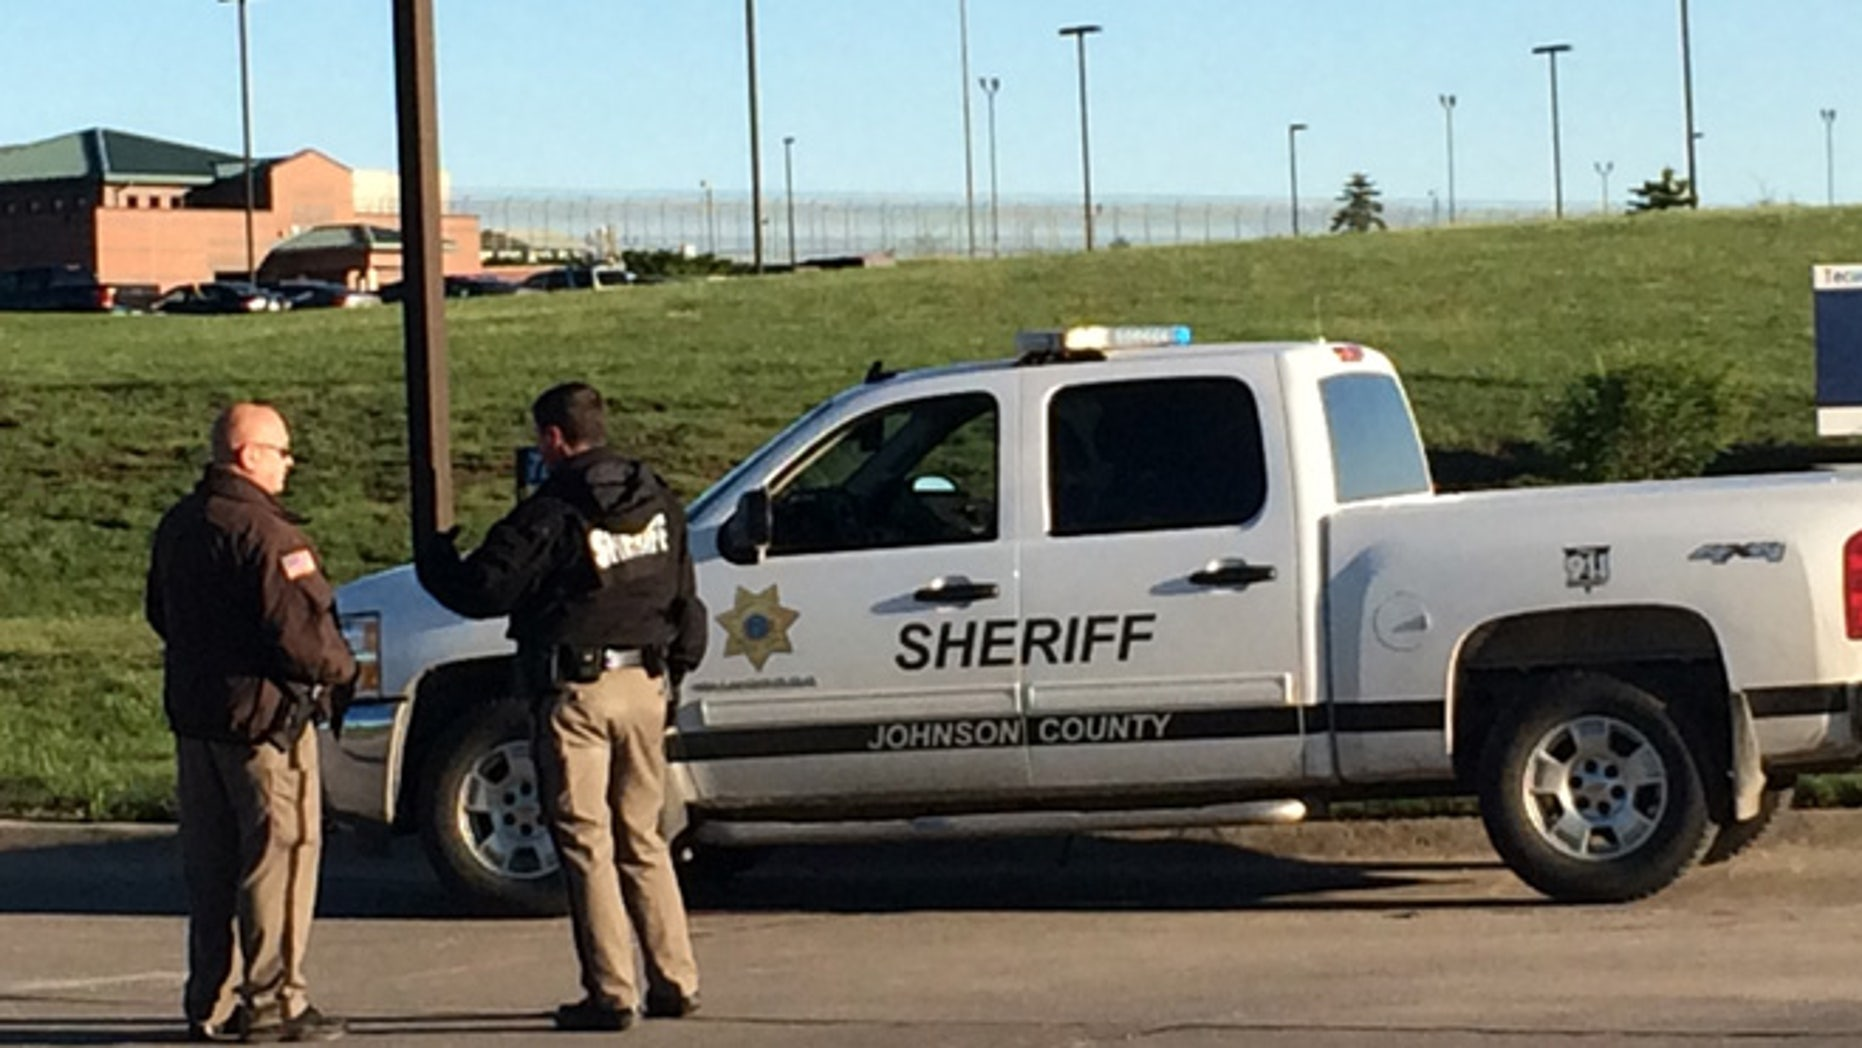 May 11, 2015: Members of the Johnson County Sheriff's Department stand outside the the Tecumseh State Correctional Institution in Tecomseh, Neb.